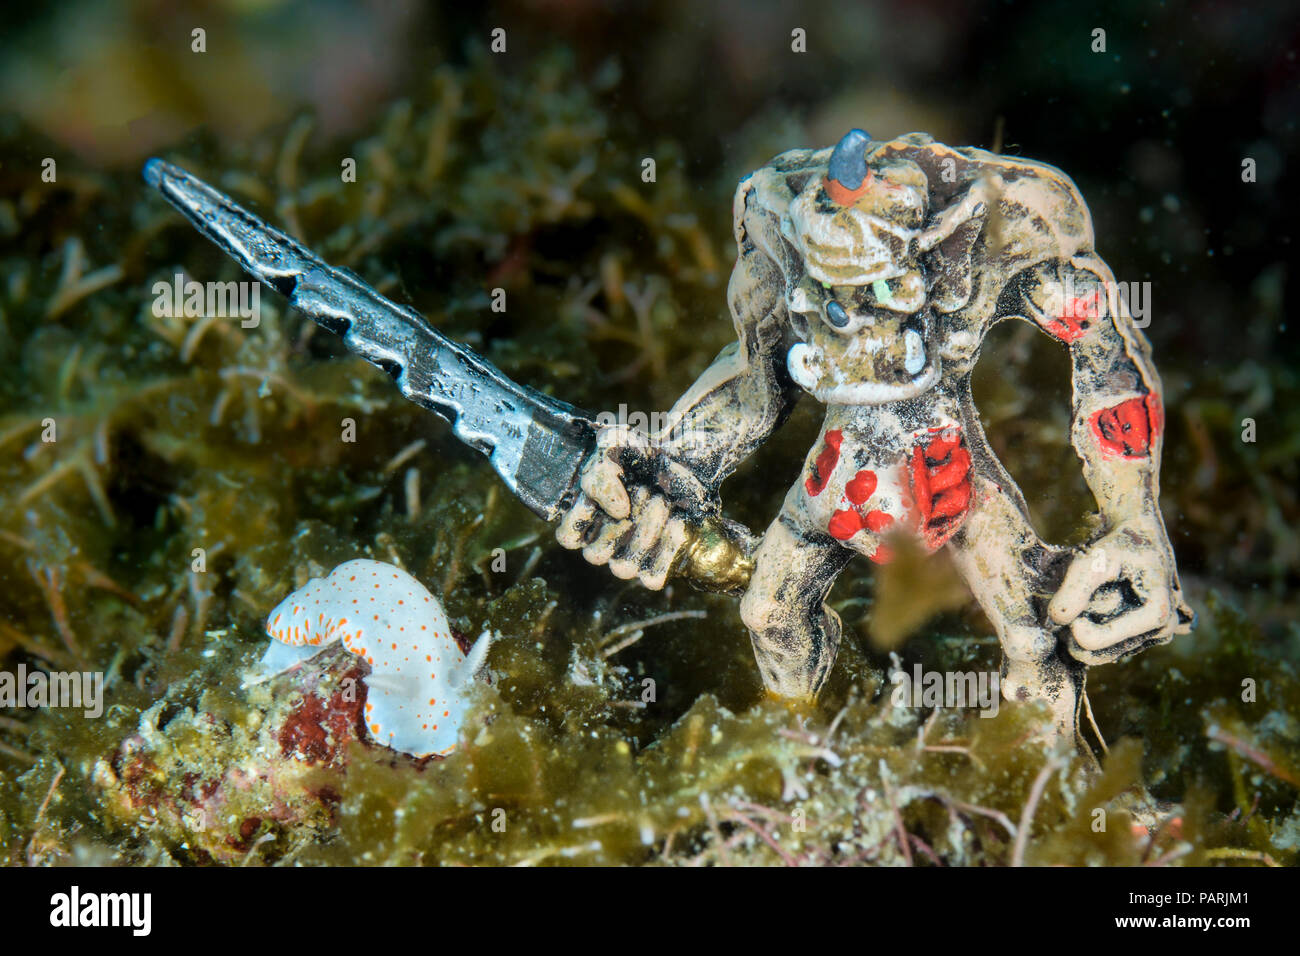 Nudibranch and RPG miniature - Stock Image